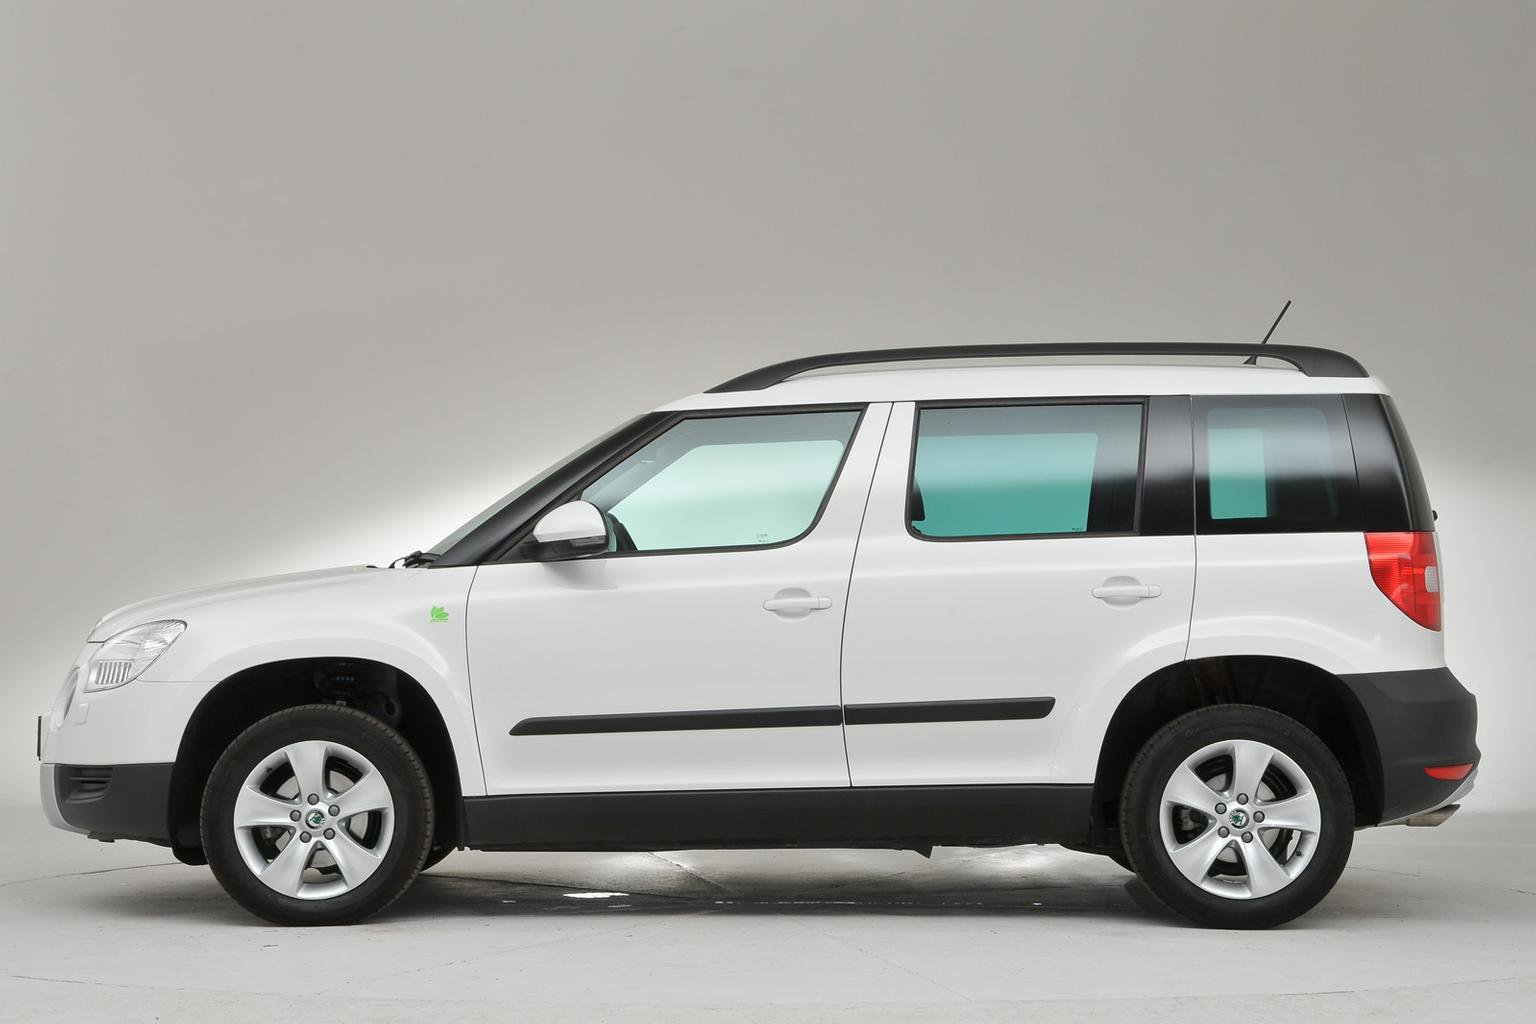 Seven-seat Skoda SUV and bigger Yeti on the way